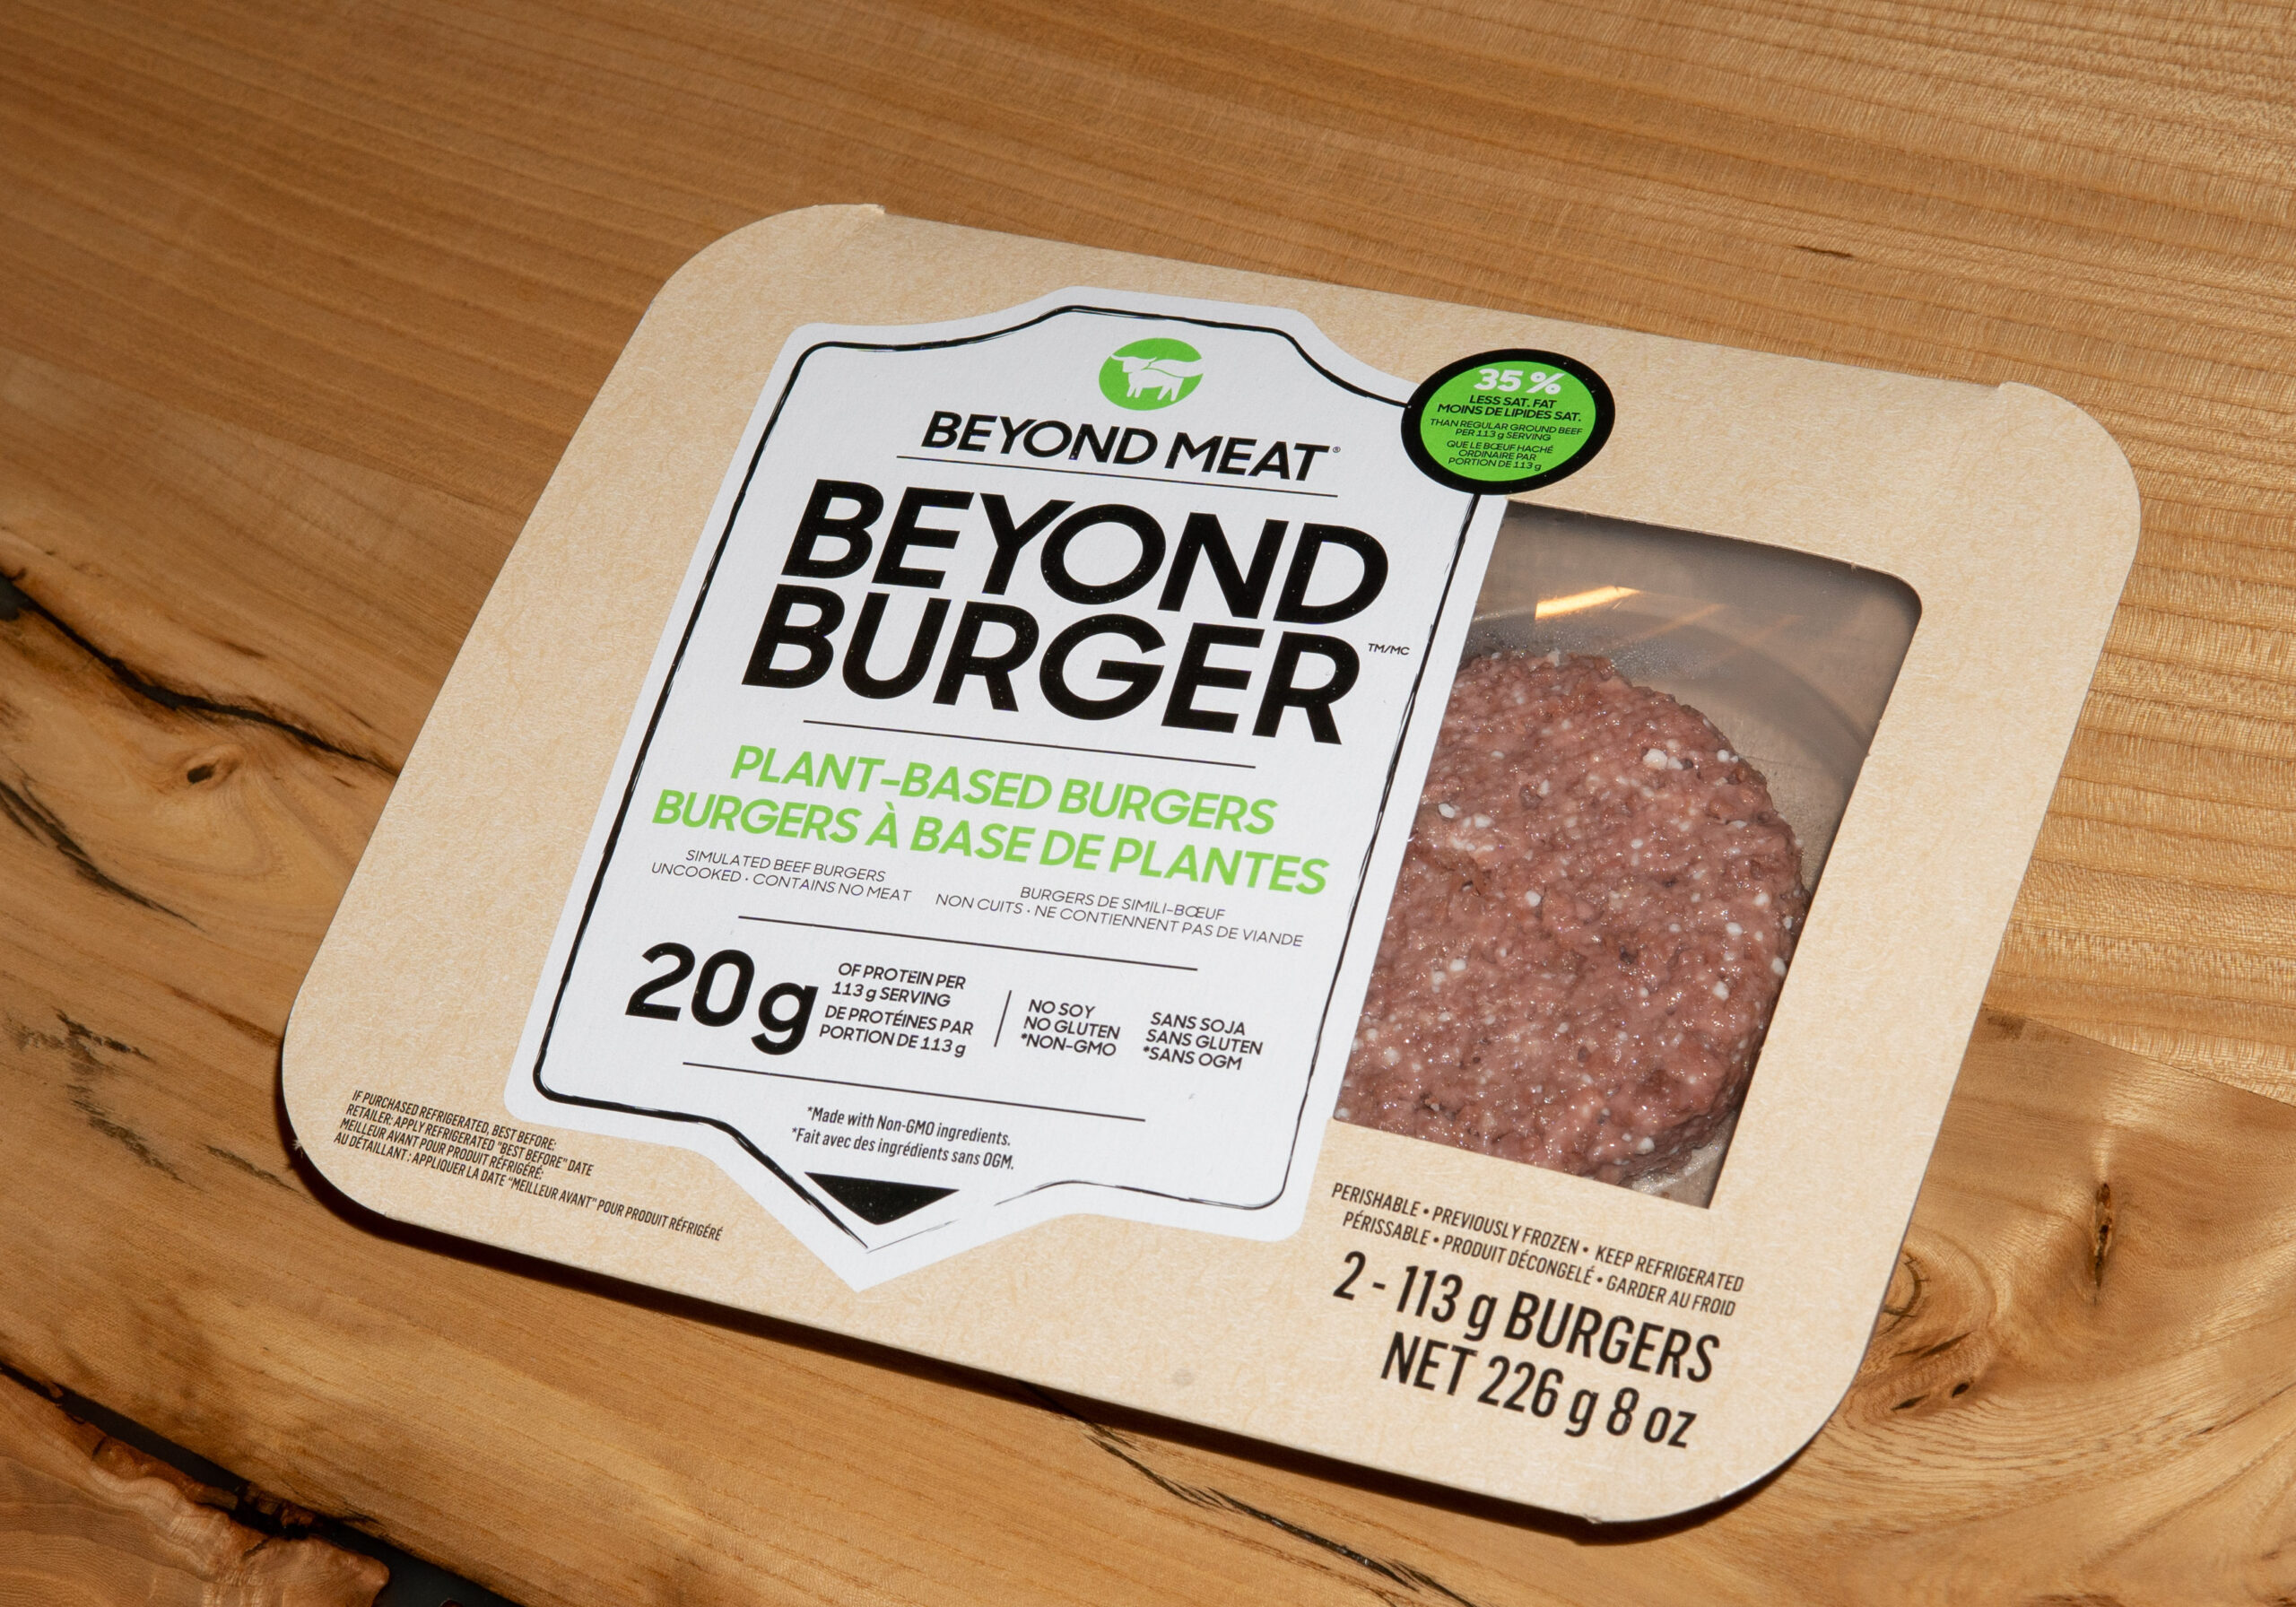 Companies like Beyond Meat have benefitted from the growing trend toward veganism. But are you ready to switch to a plant-based diet? (Photo by Geoffrey Howard)